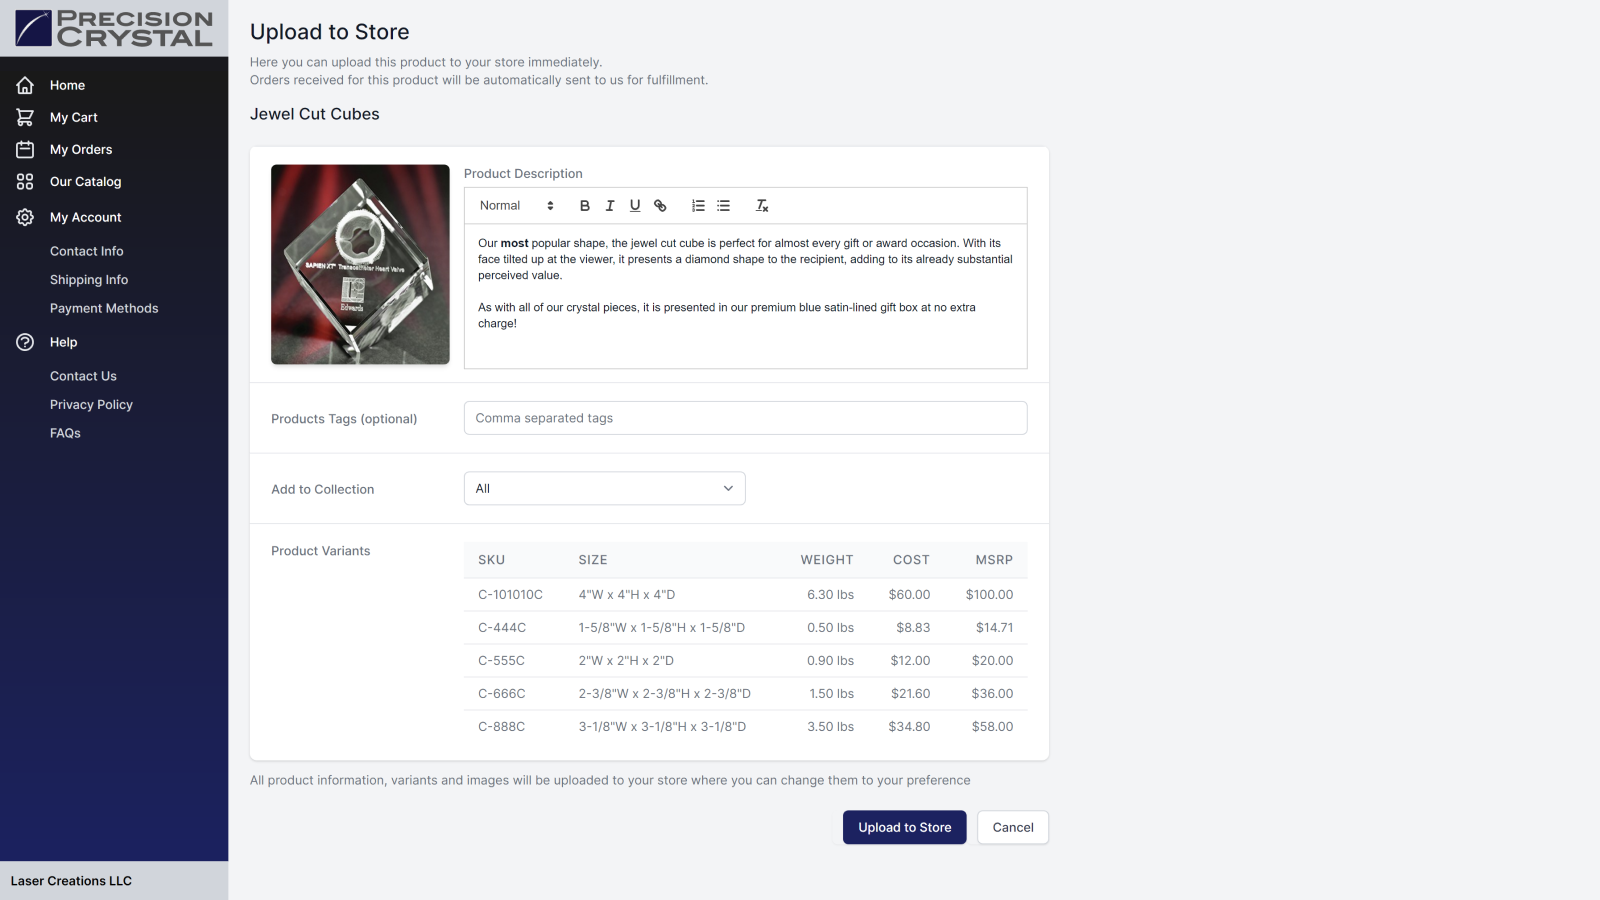 Upload to Store Page